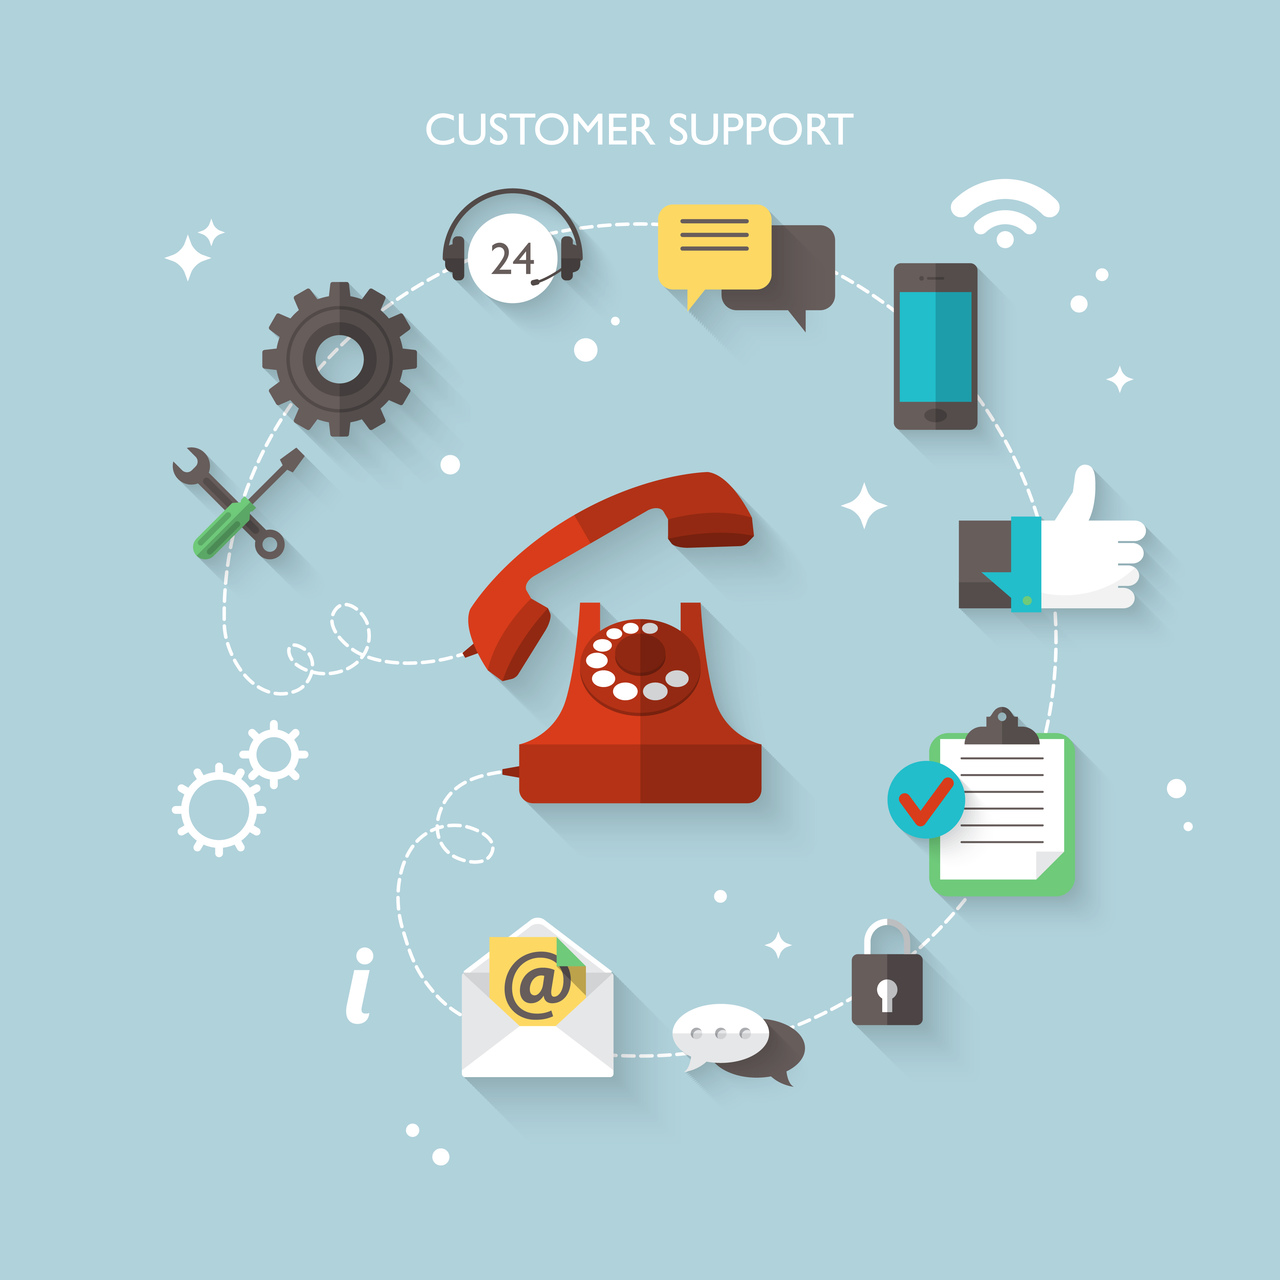 Customer support visual example to boost your phone call traffic.